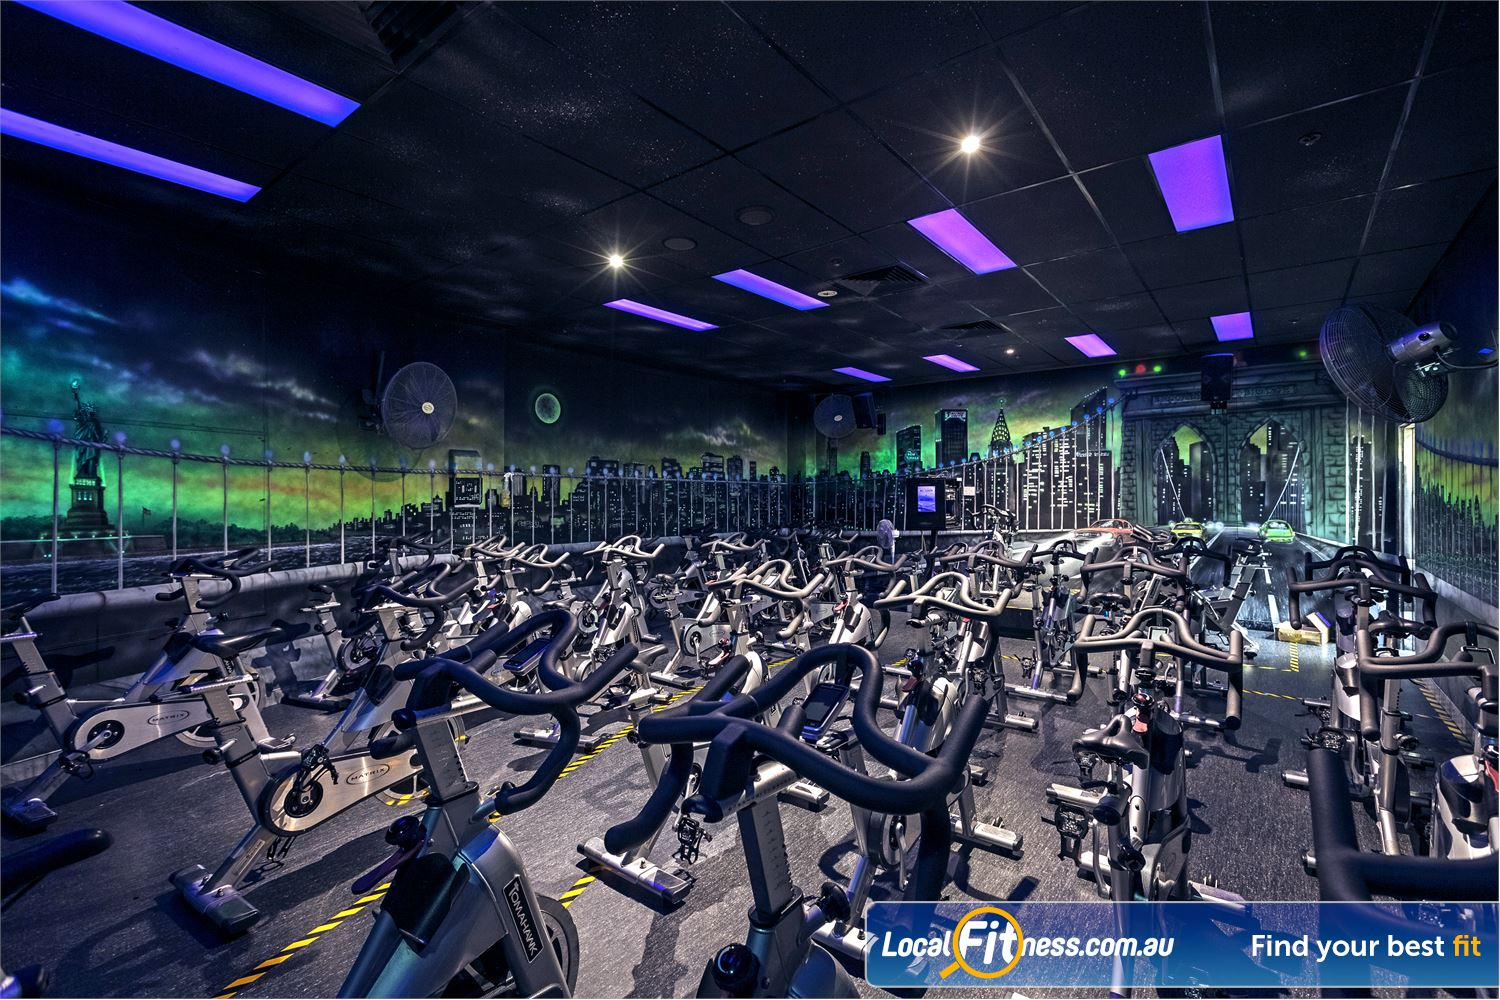 Goodlife Health Clubs Near Coombabah Dedicated Helensvale spin cycle studio.